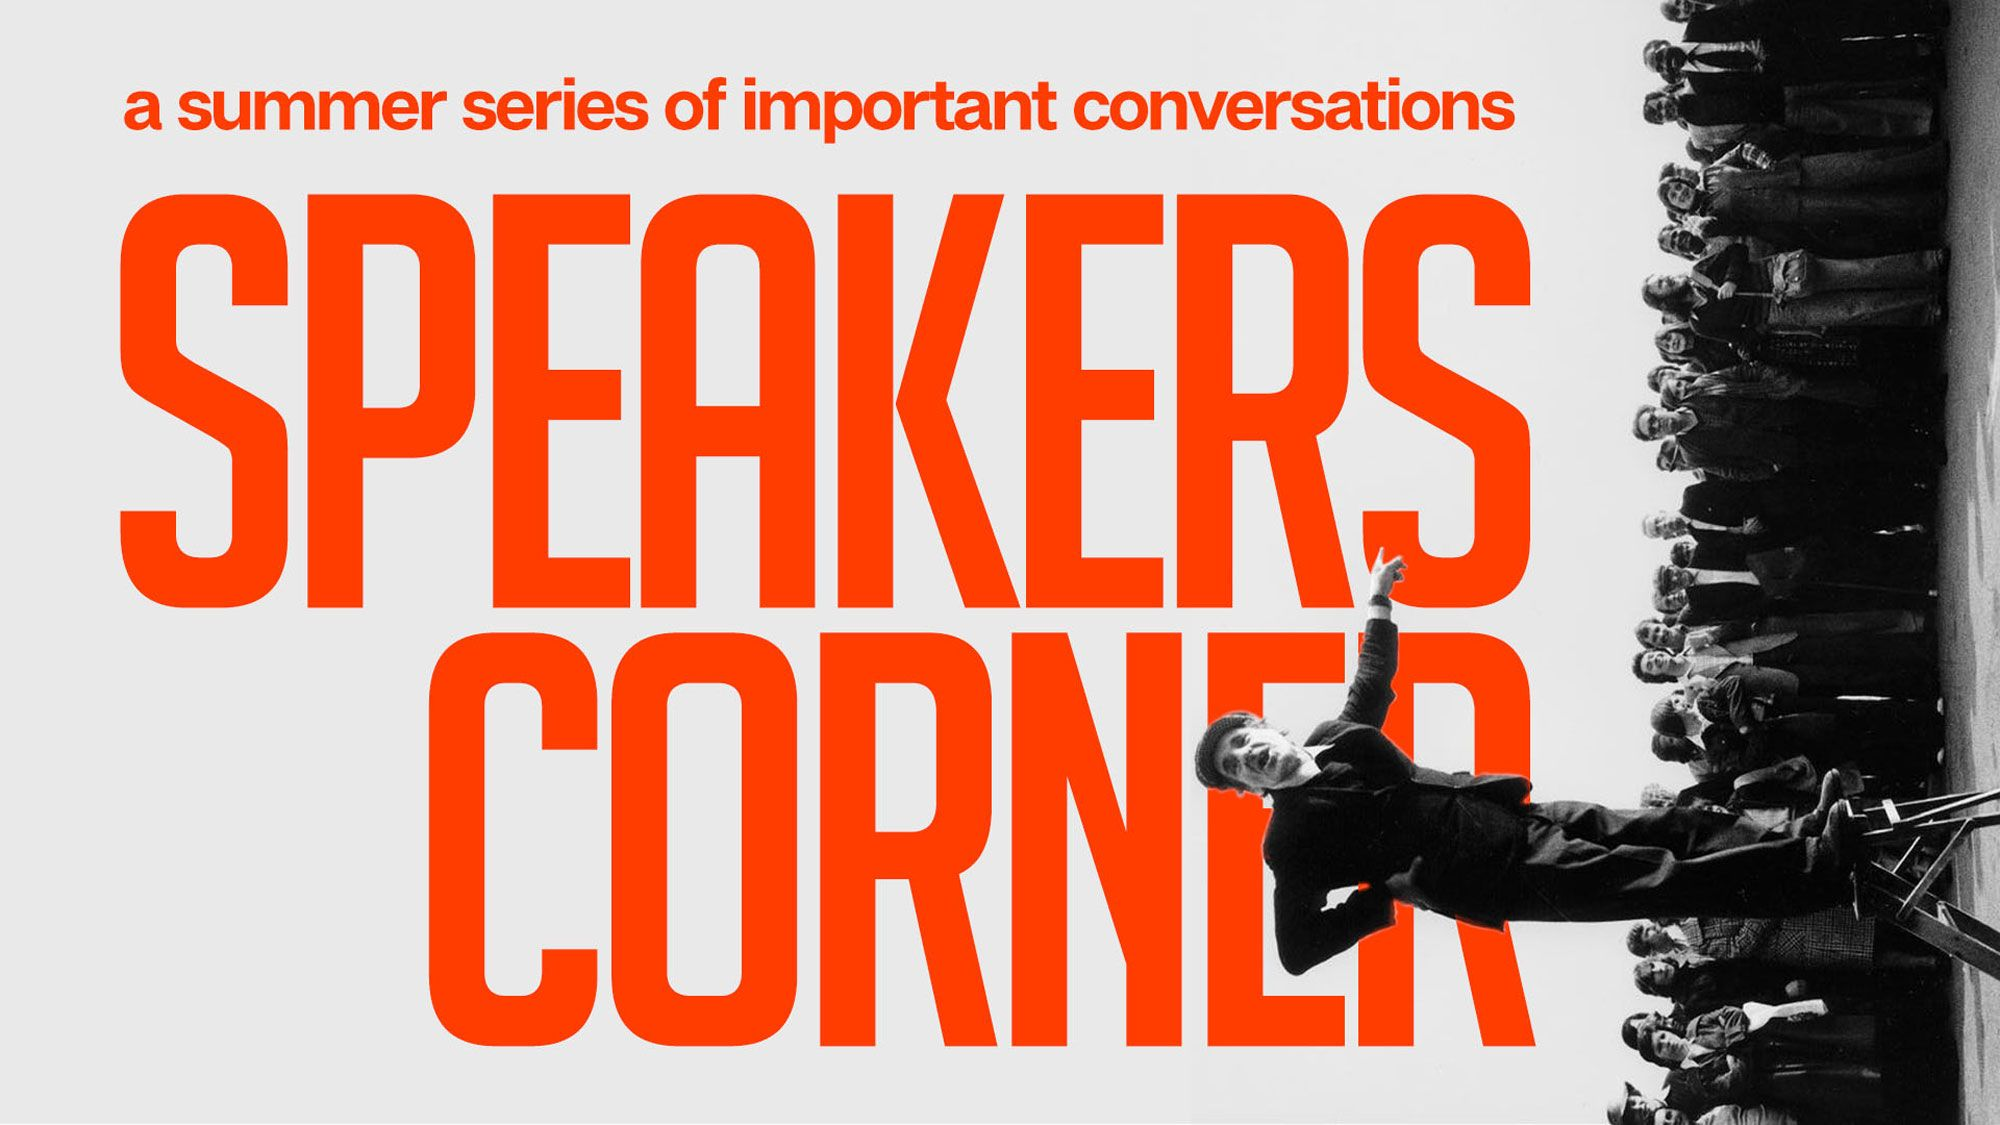 Speakers Corner graphic